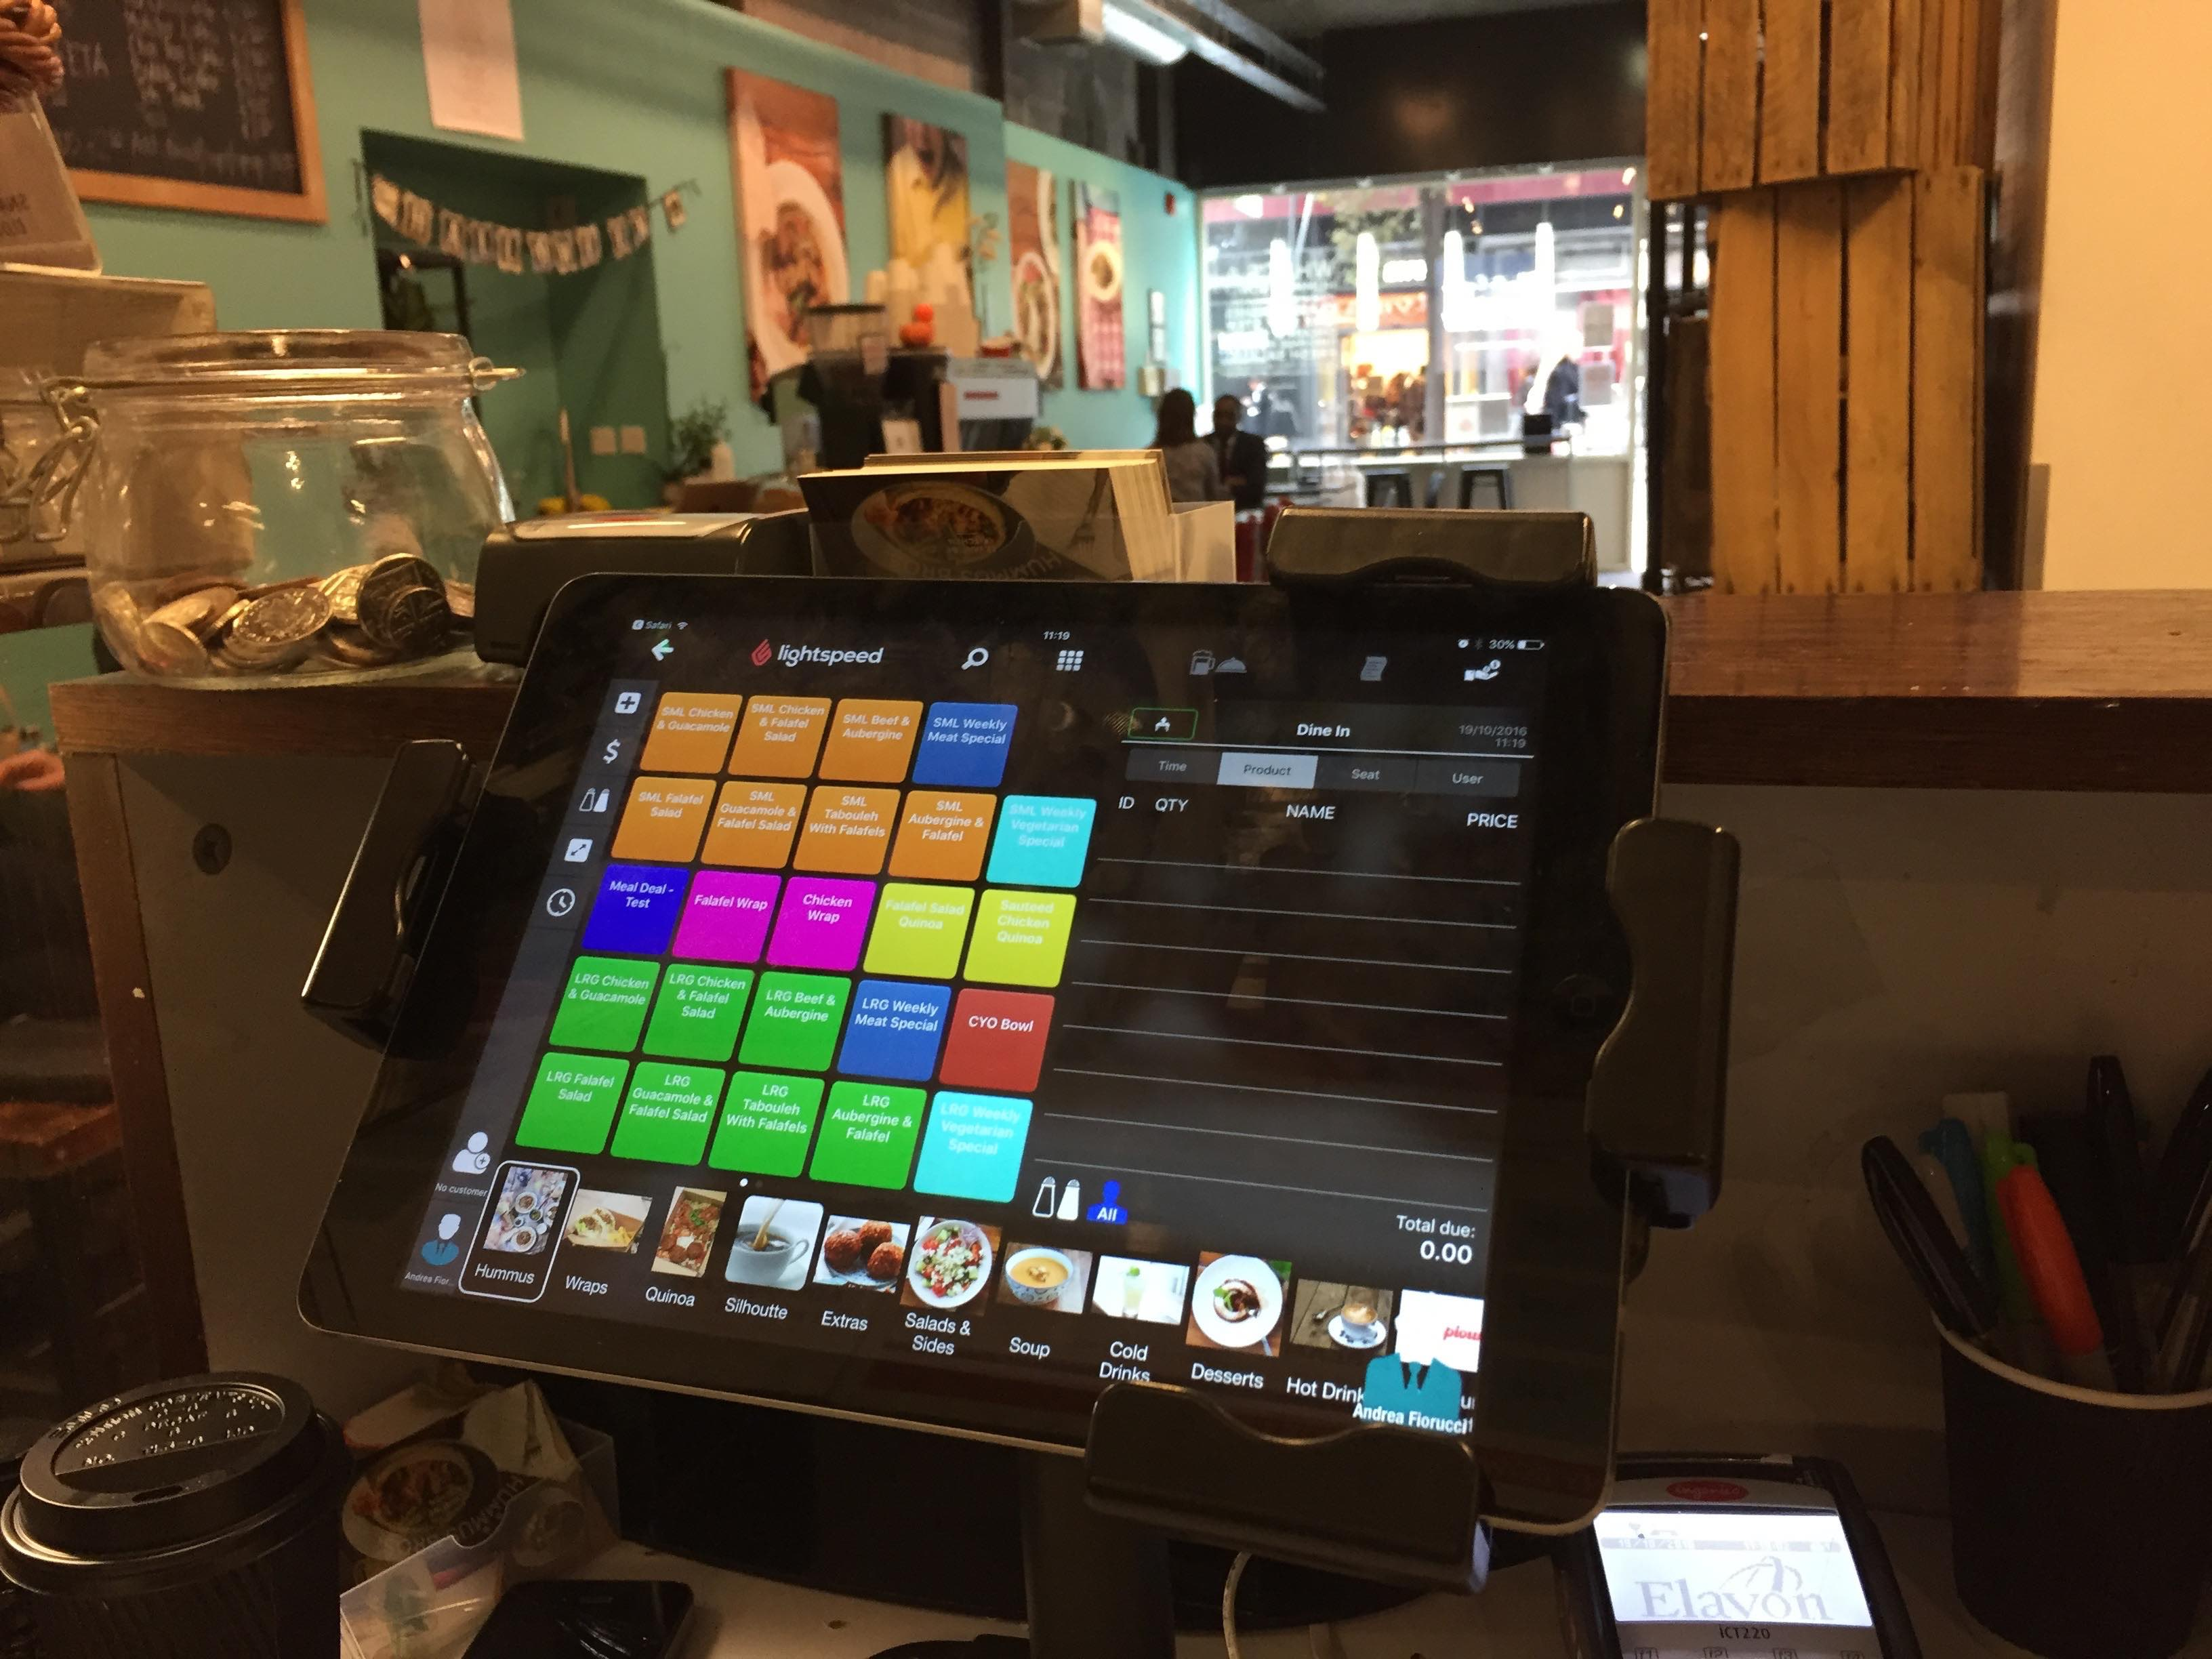 Hummus Bros using Lightspeed Restaurant's iPad POS